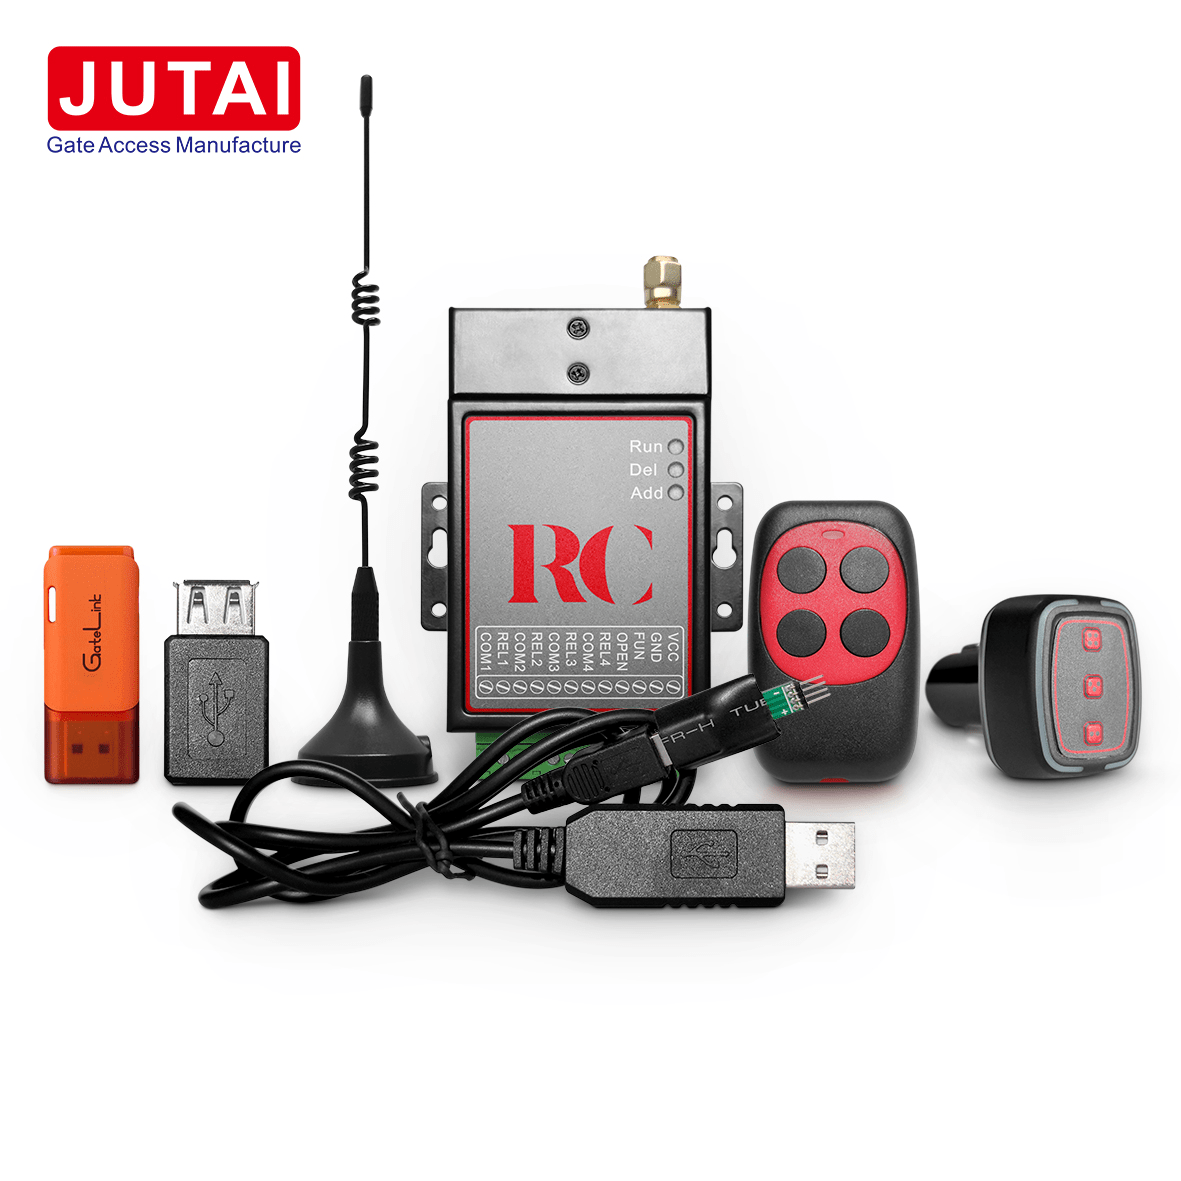 JUTAI Gatelink all-in-one Solution your safe key plus